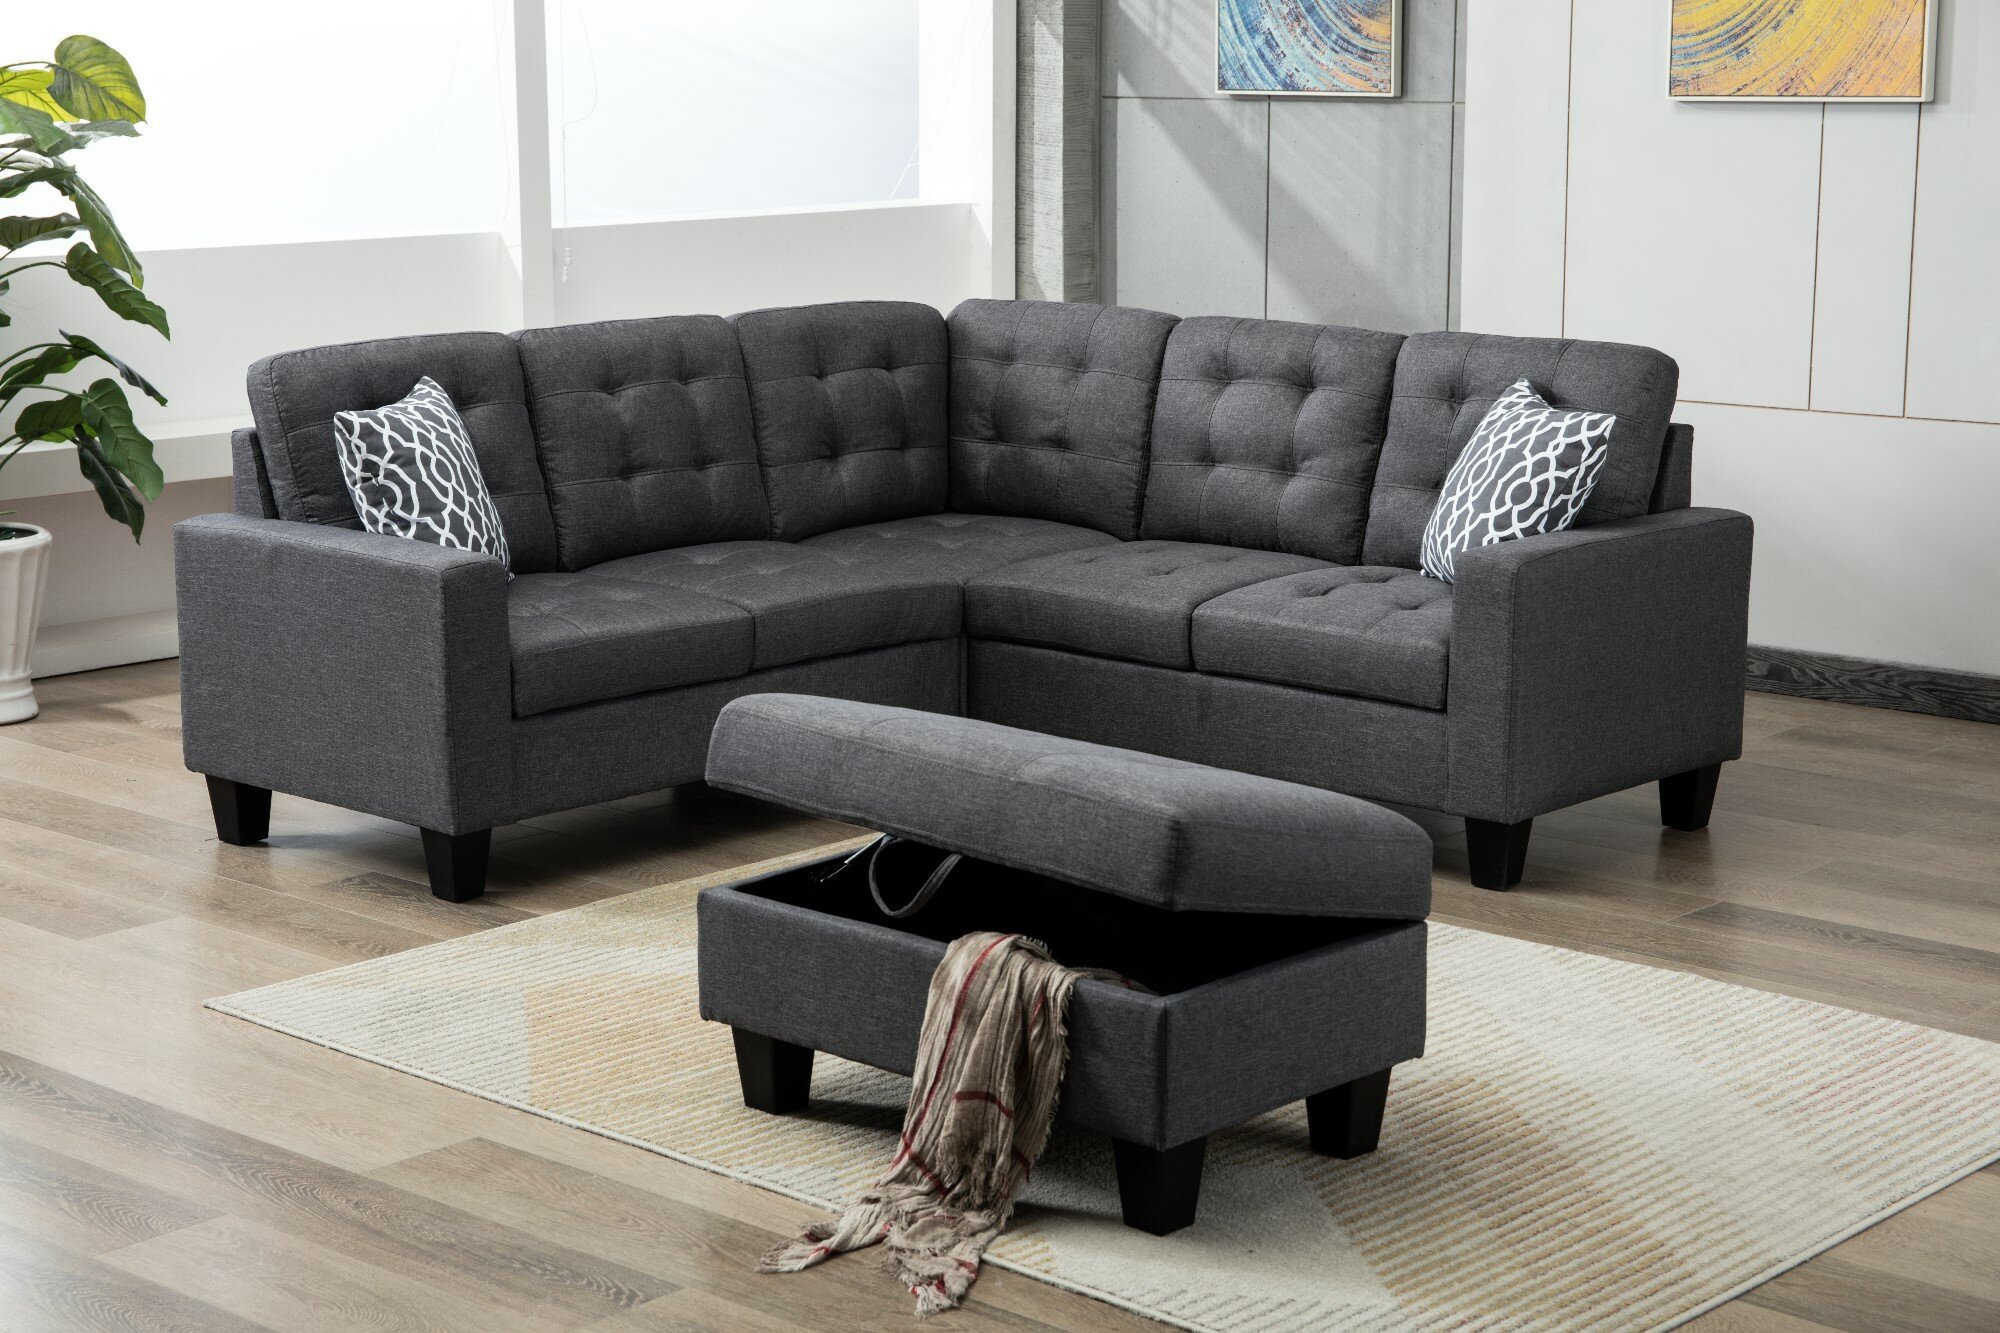 Butcher Symmetrical Sectional Sofa With Ottoman